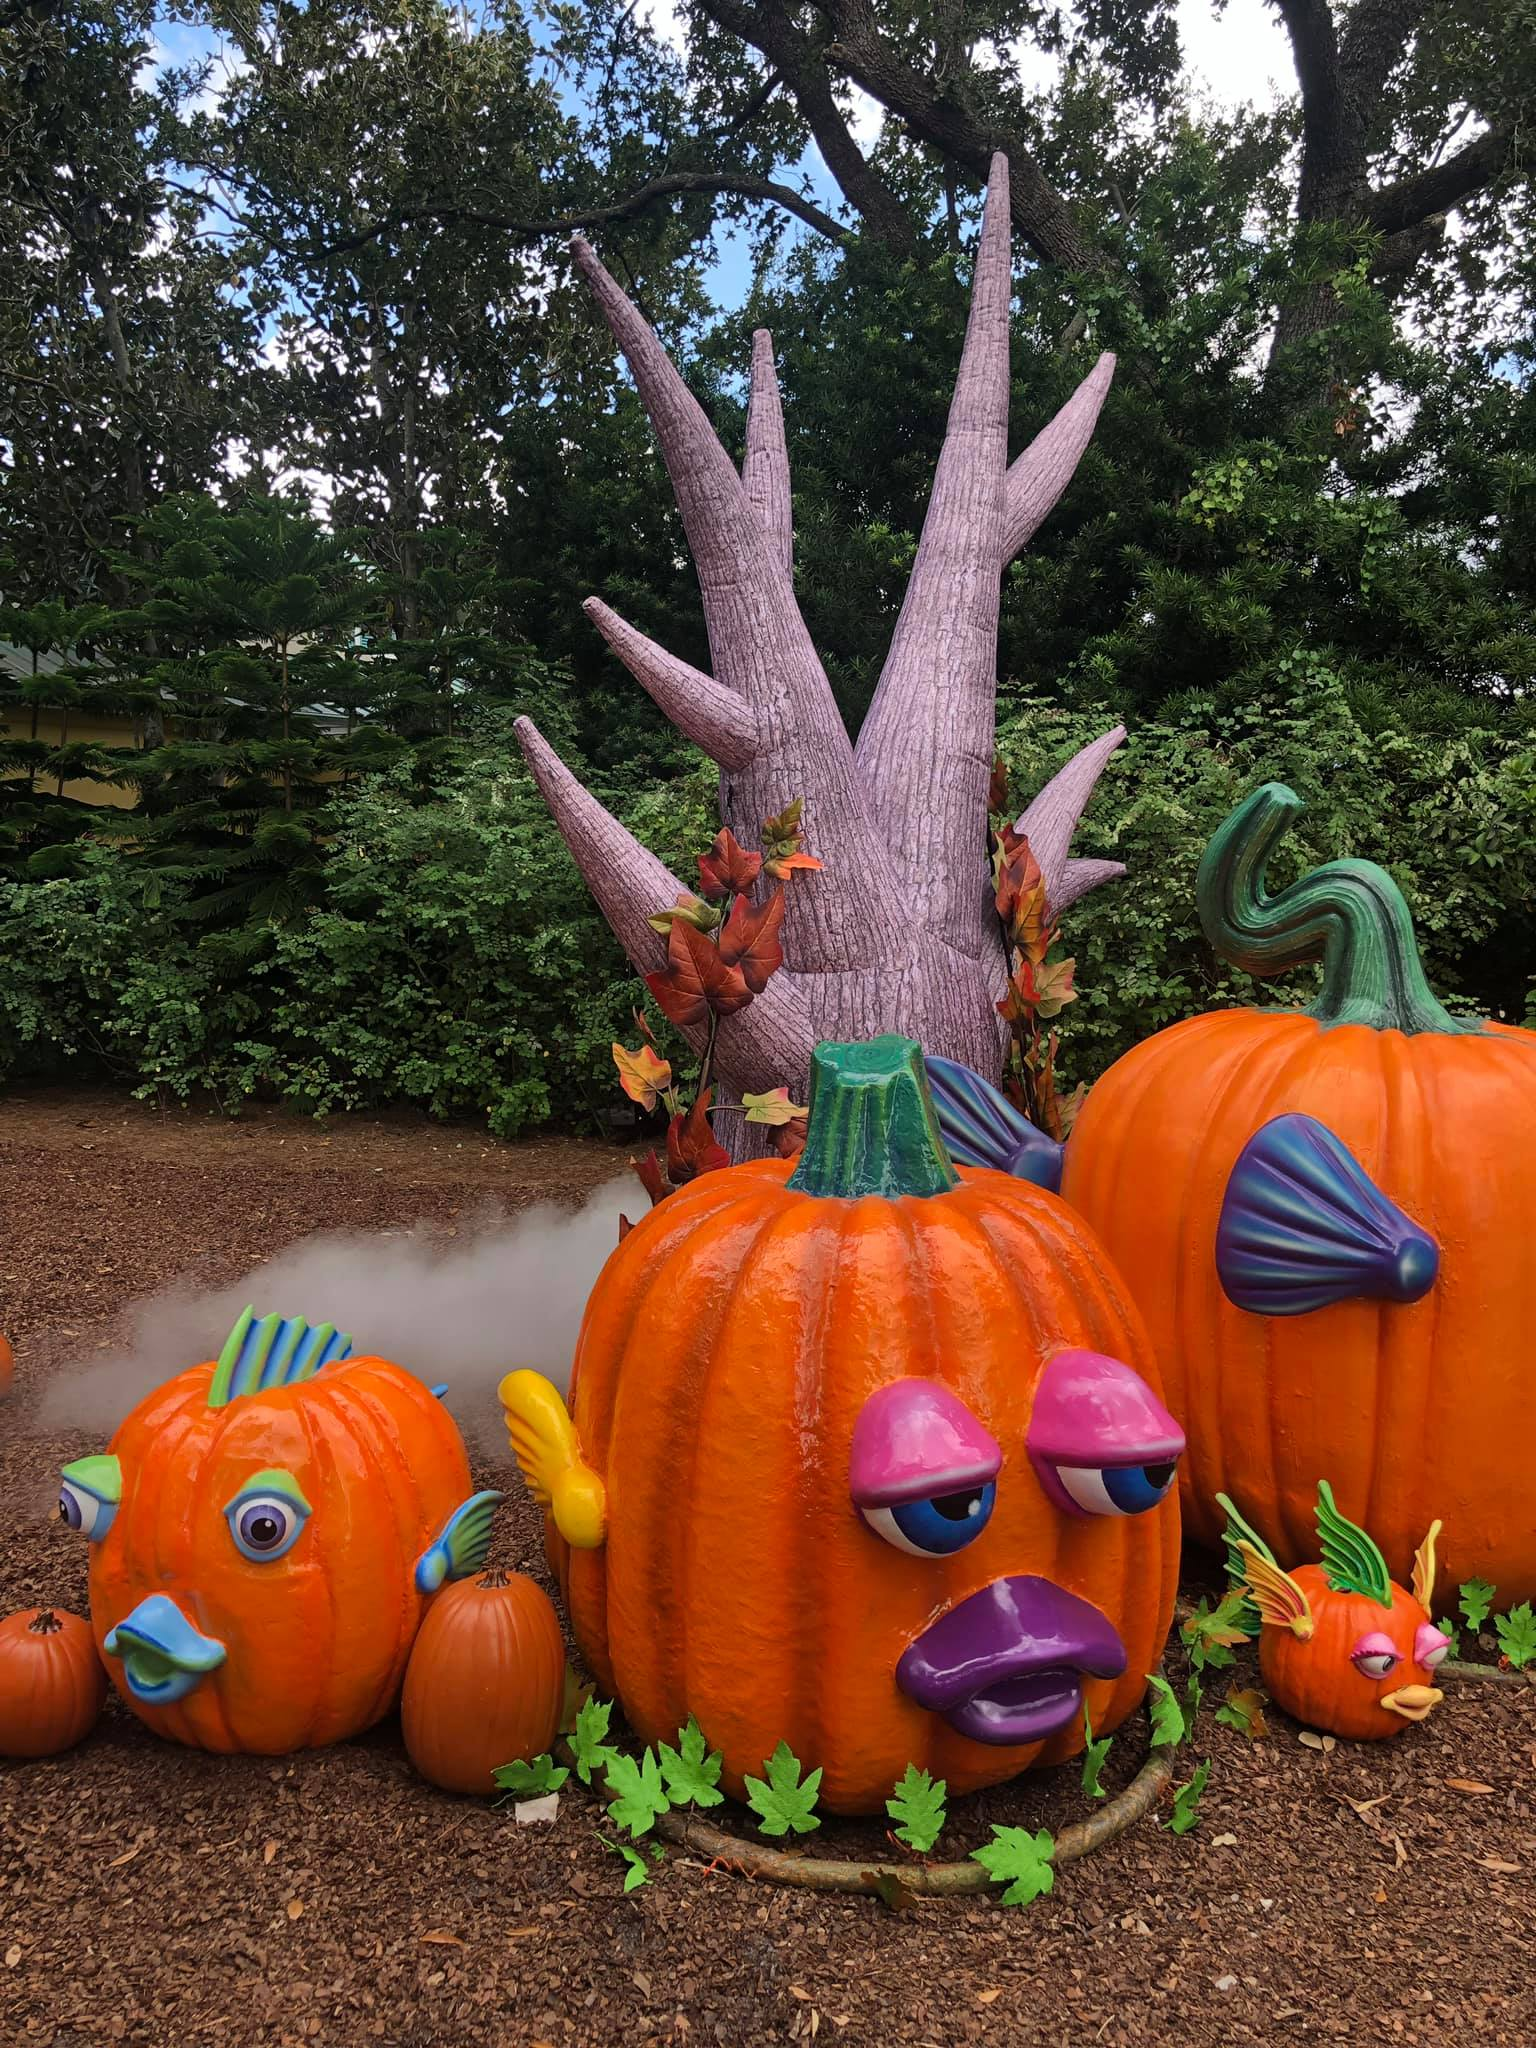 Three decorated fake pumpkin with a blow up tree and fog in the background.